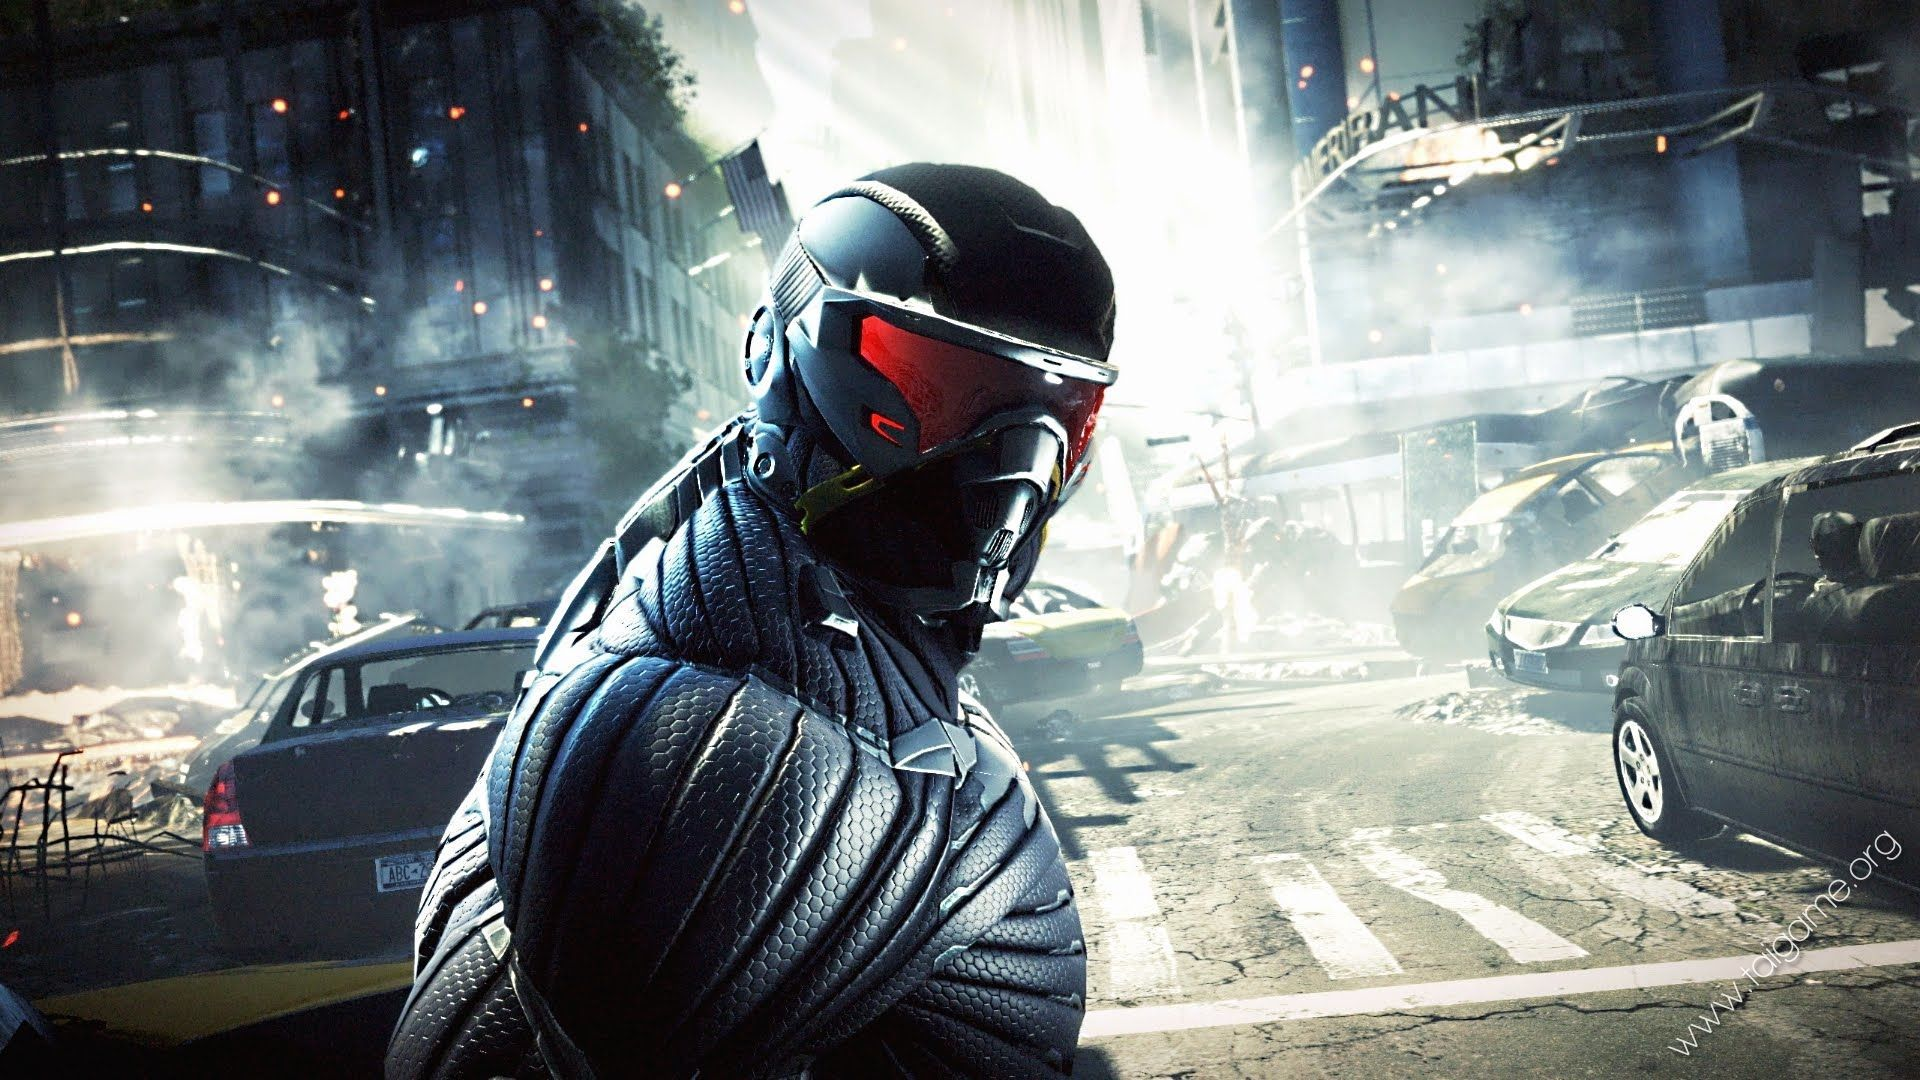 Crysis 2 - Maximum Edition - Download Free Full Games | Arcade & Action games